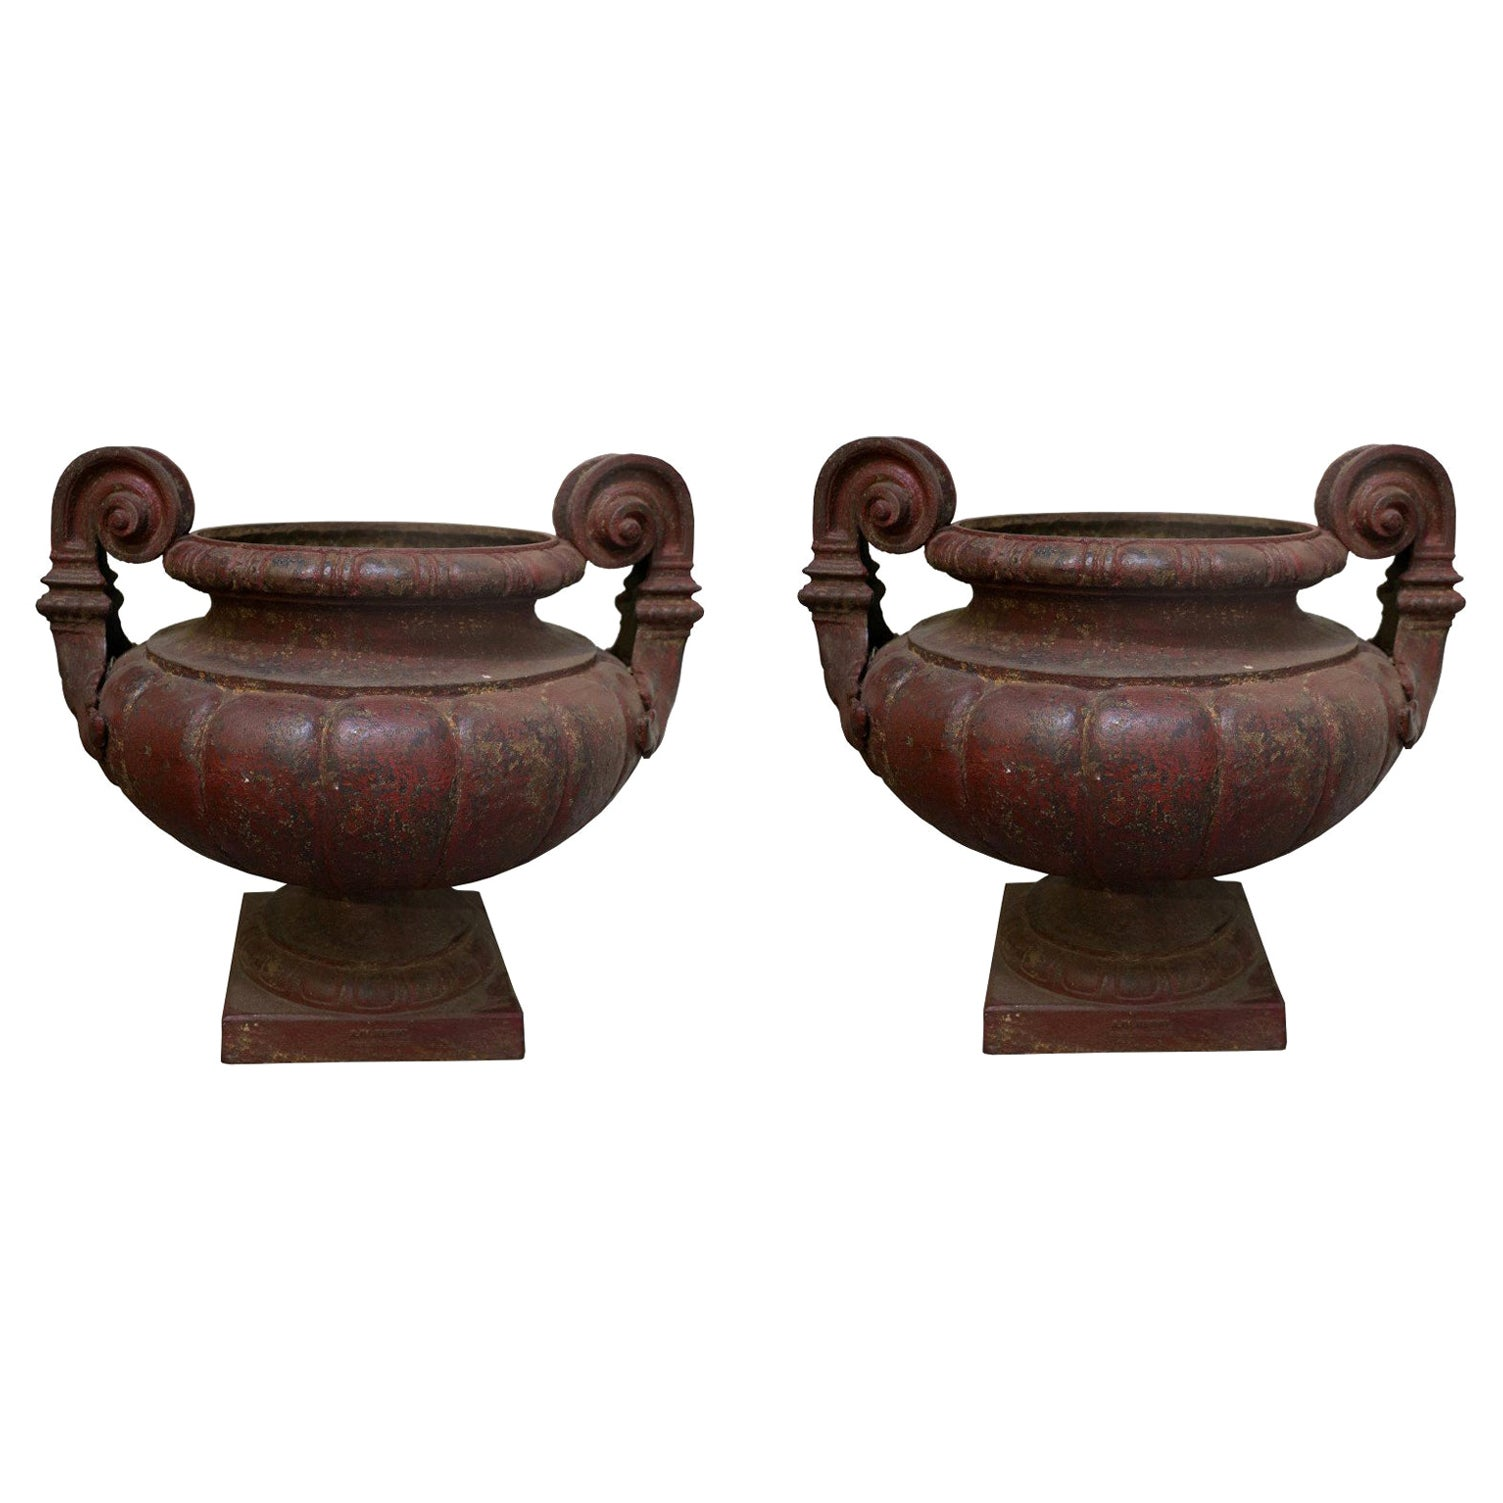 19th Century Pair of Cast Iron Medici Urns Cast by Durenne-Founder in AIX